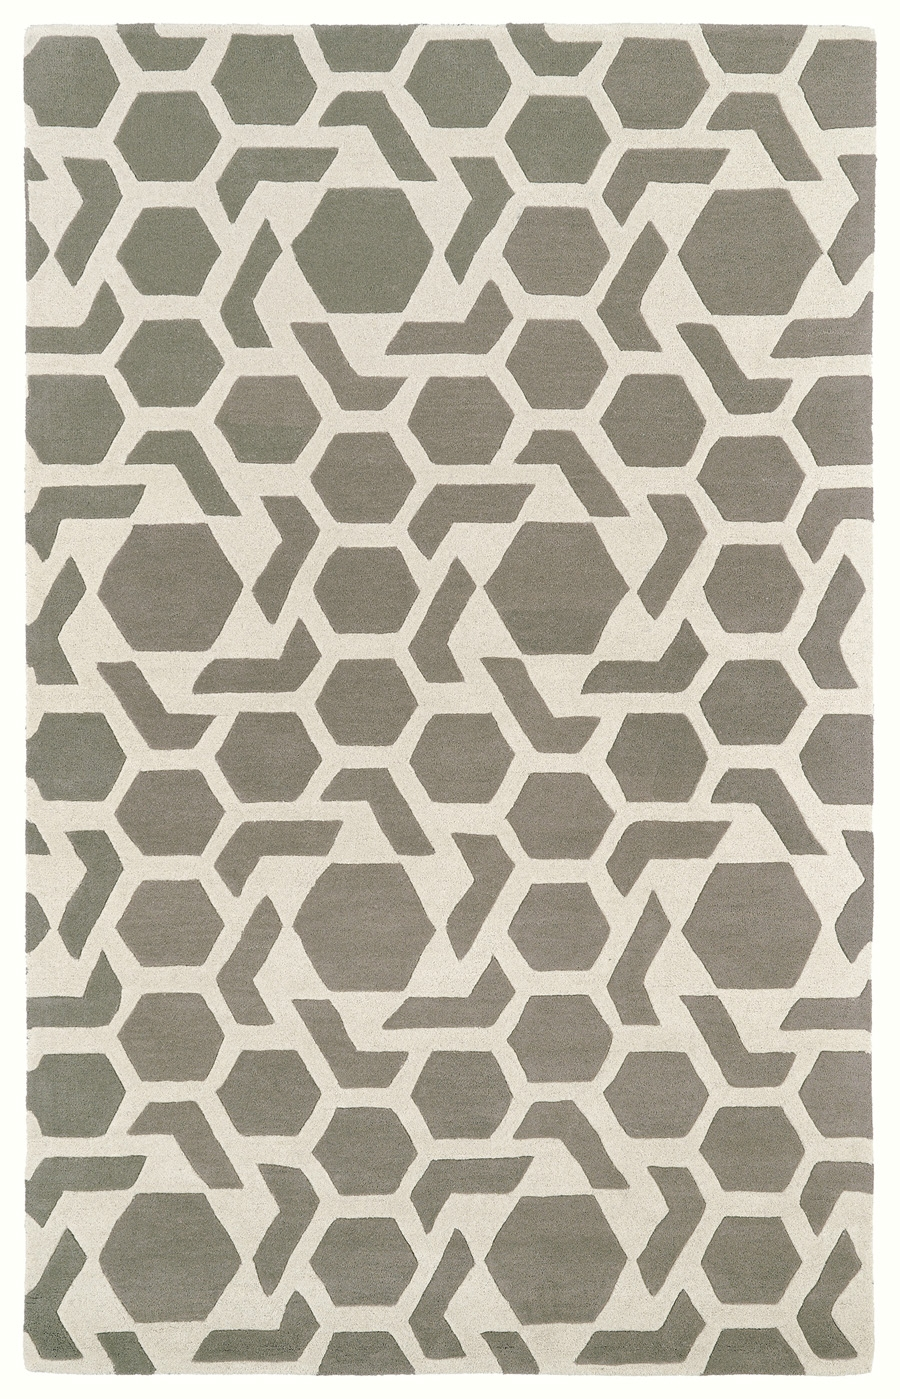 Kaleen Revolution REV05 75 Grey Rug